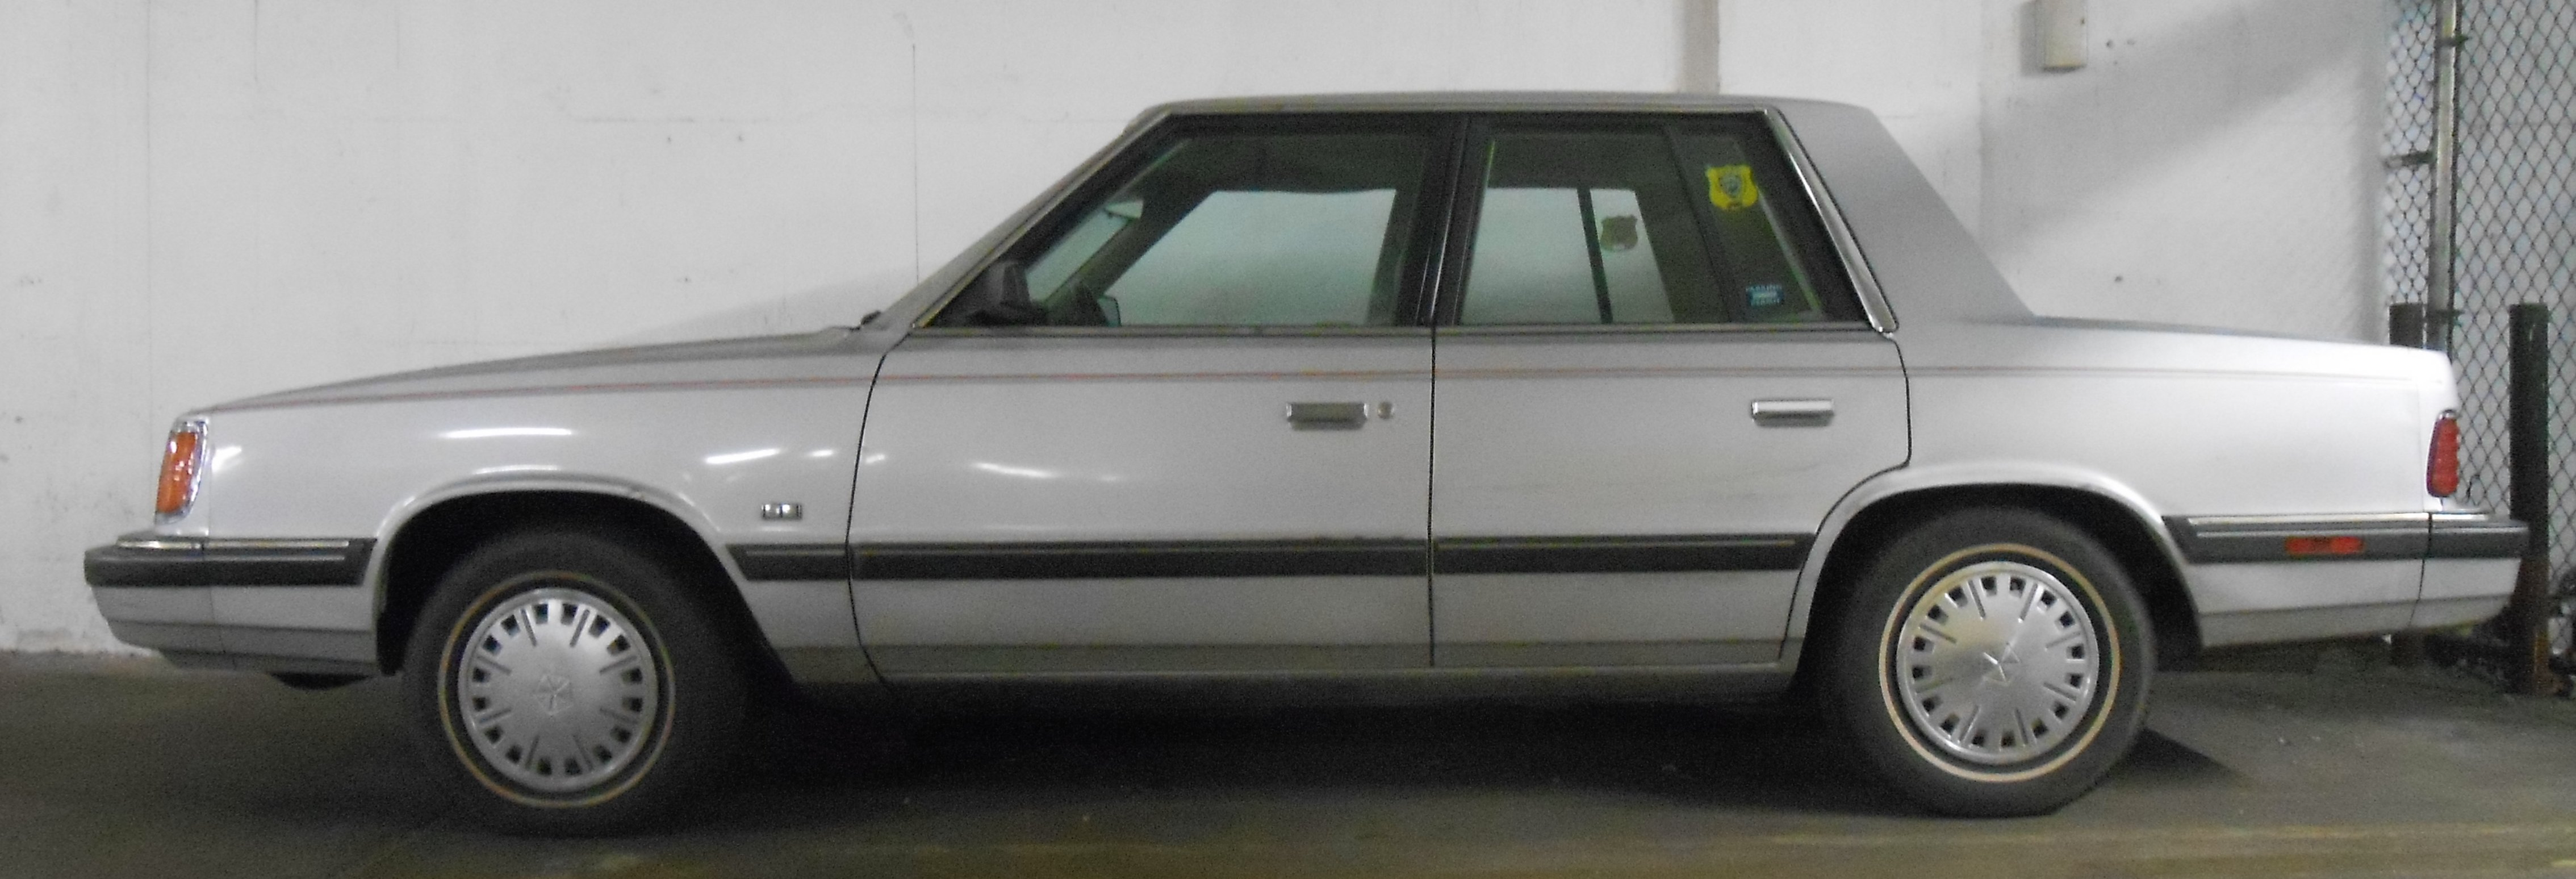 1986 Plymouth Reliant #3